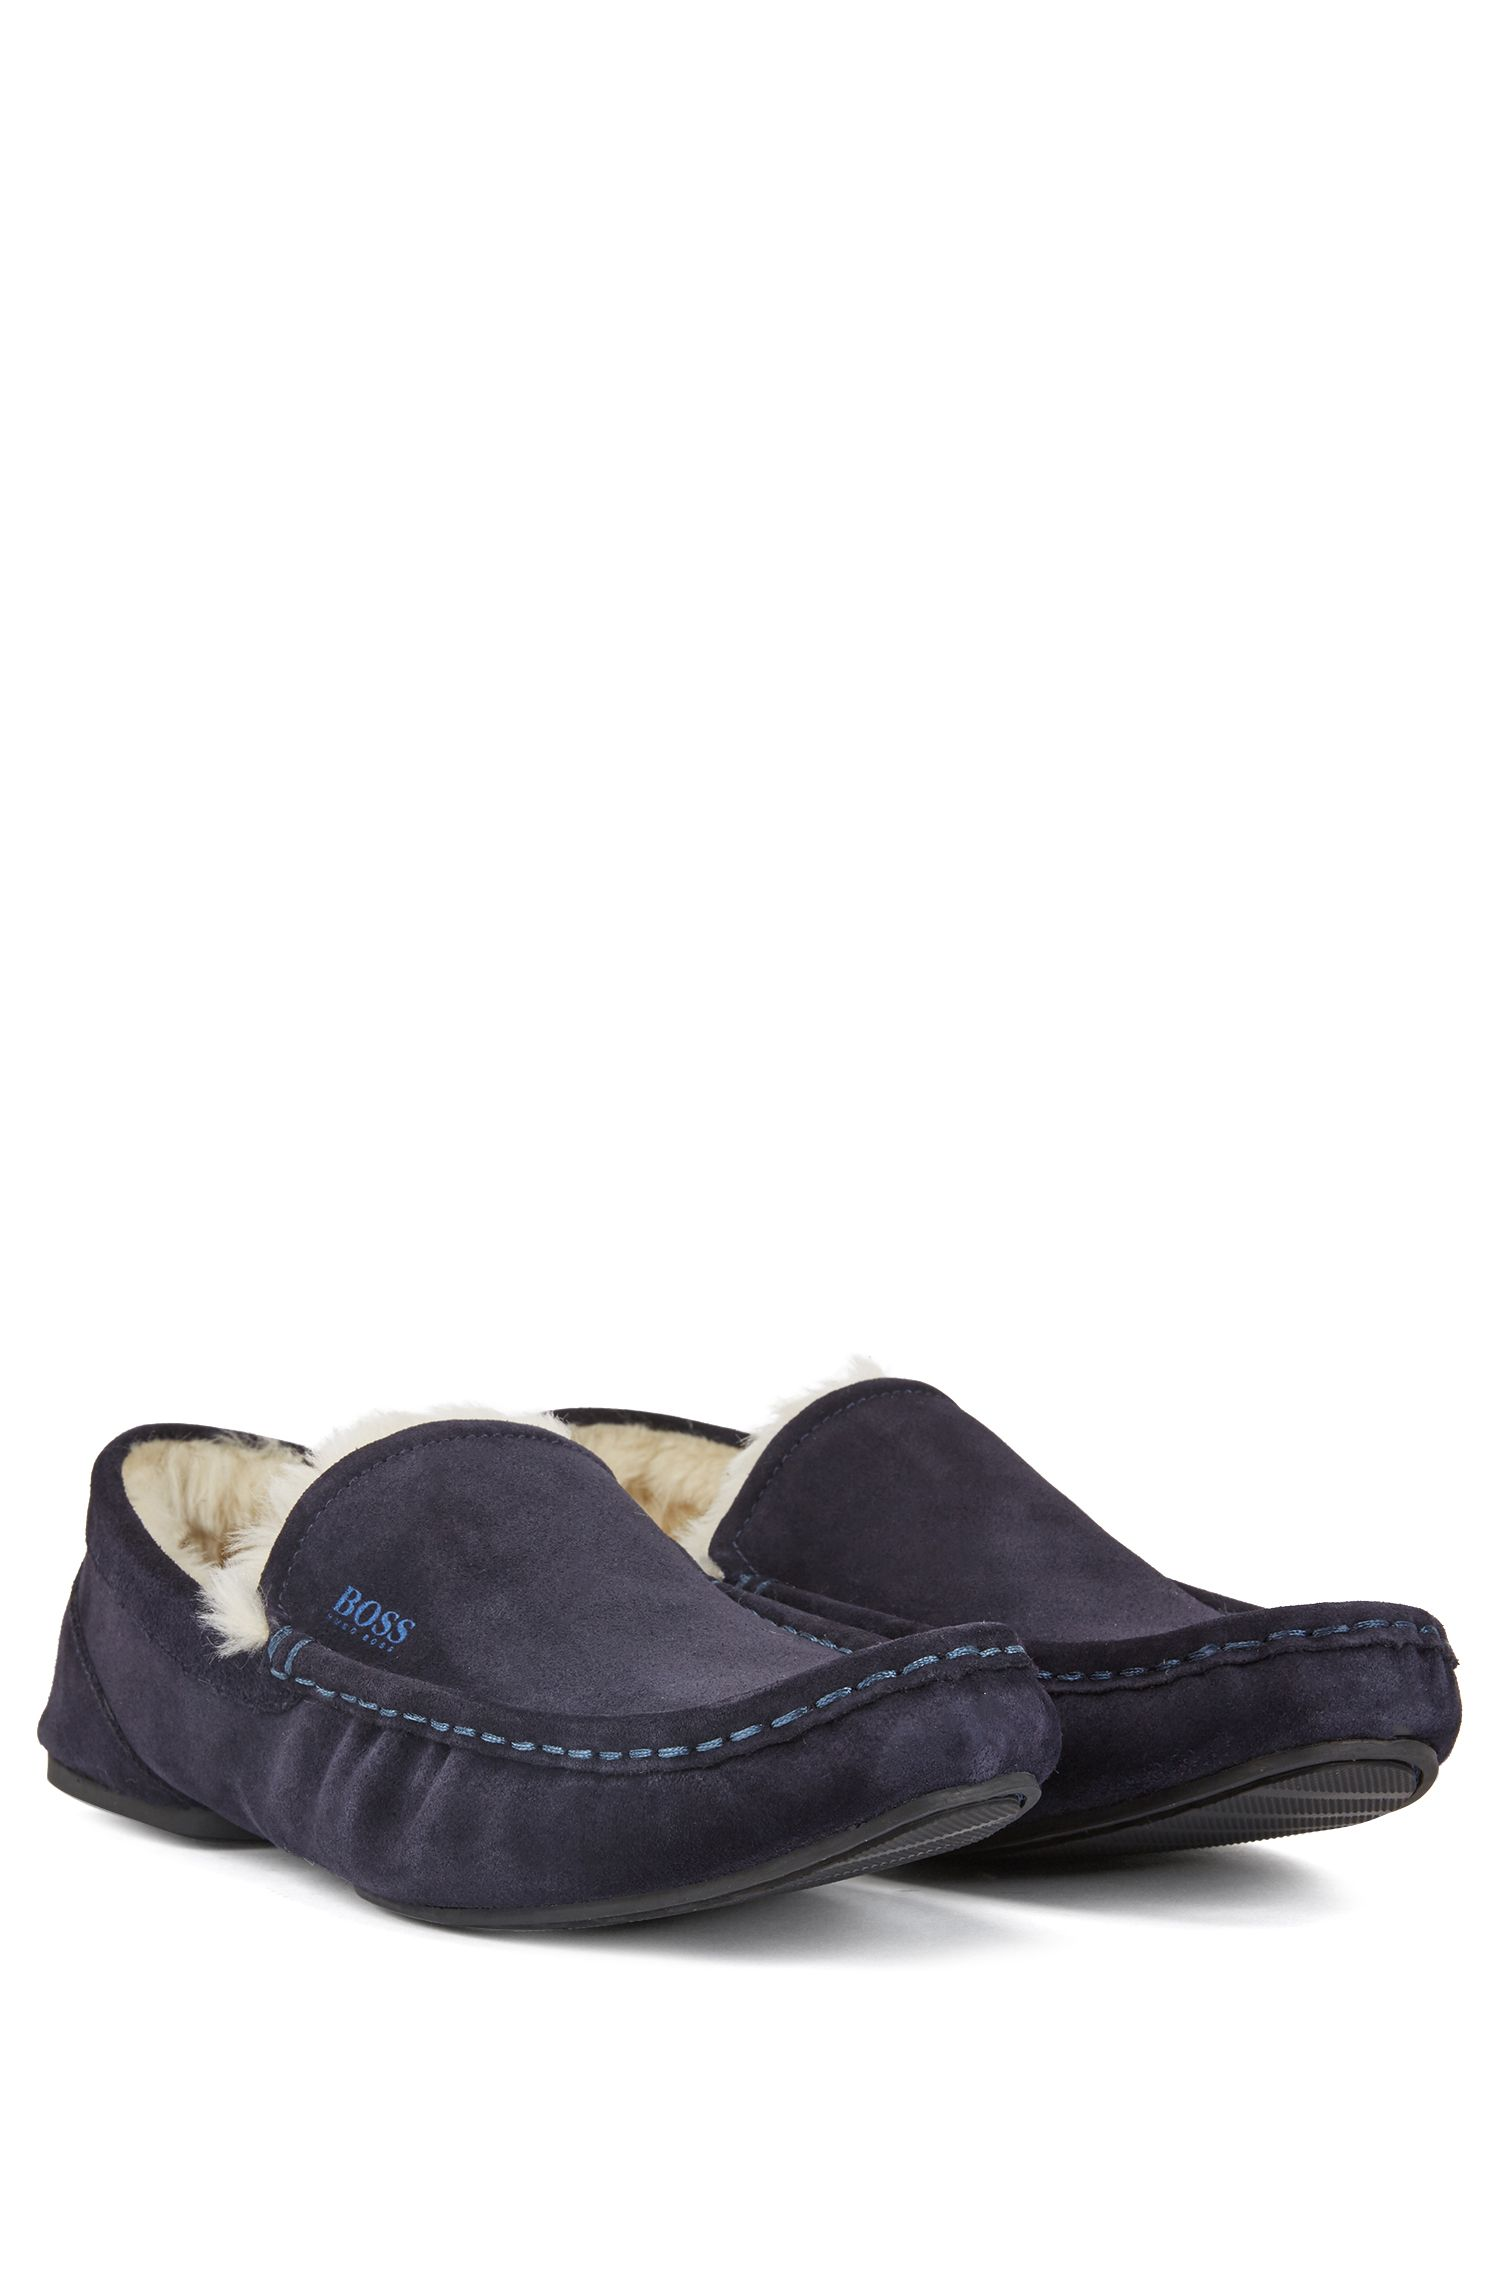 Slip-on moccasins in suede with a rubber sole, Dark Blue